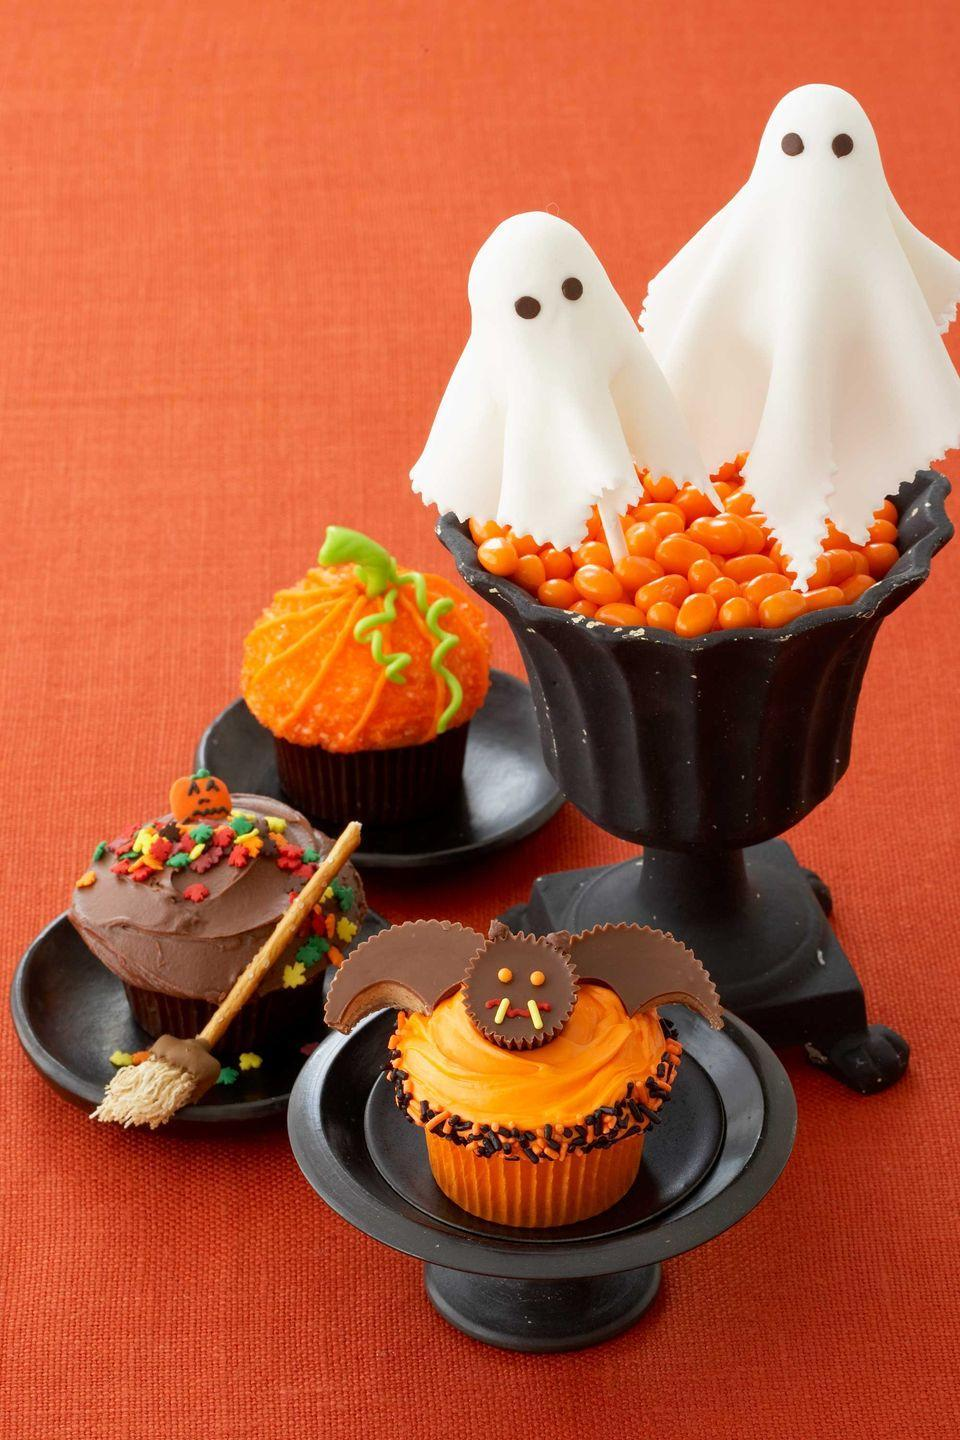 """<p>A few strategically placed peanut butter cups turn a basic cupcake into something spook-tacular.</p><p><em><a href=""""https://www.womansday.com/food-recipes/food-drinks/recipes/a10778/creepy-cupcakes-recipe-122165/"""" rel=""""nofollow noopener"""" target=""""_blank"""" data-ylk=""""slk:Get the Peanut Butter Cup Bat Cupcakes recipe."""" class=""""link rapid-noclick-resp"""">Get the Peanut Butter Cup Bat Cupcakes recipe.</a></em></p>"""